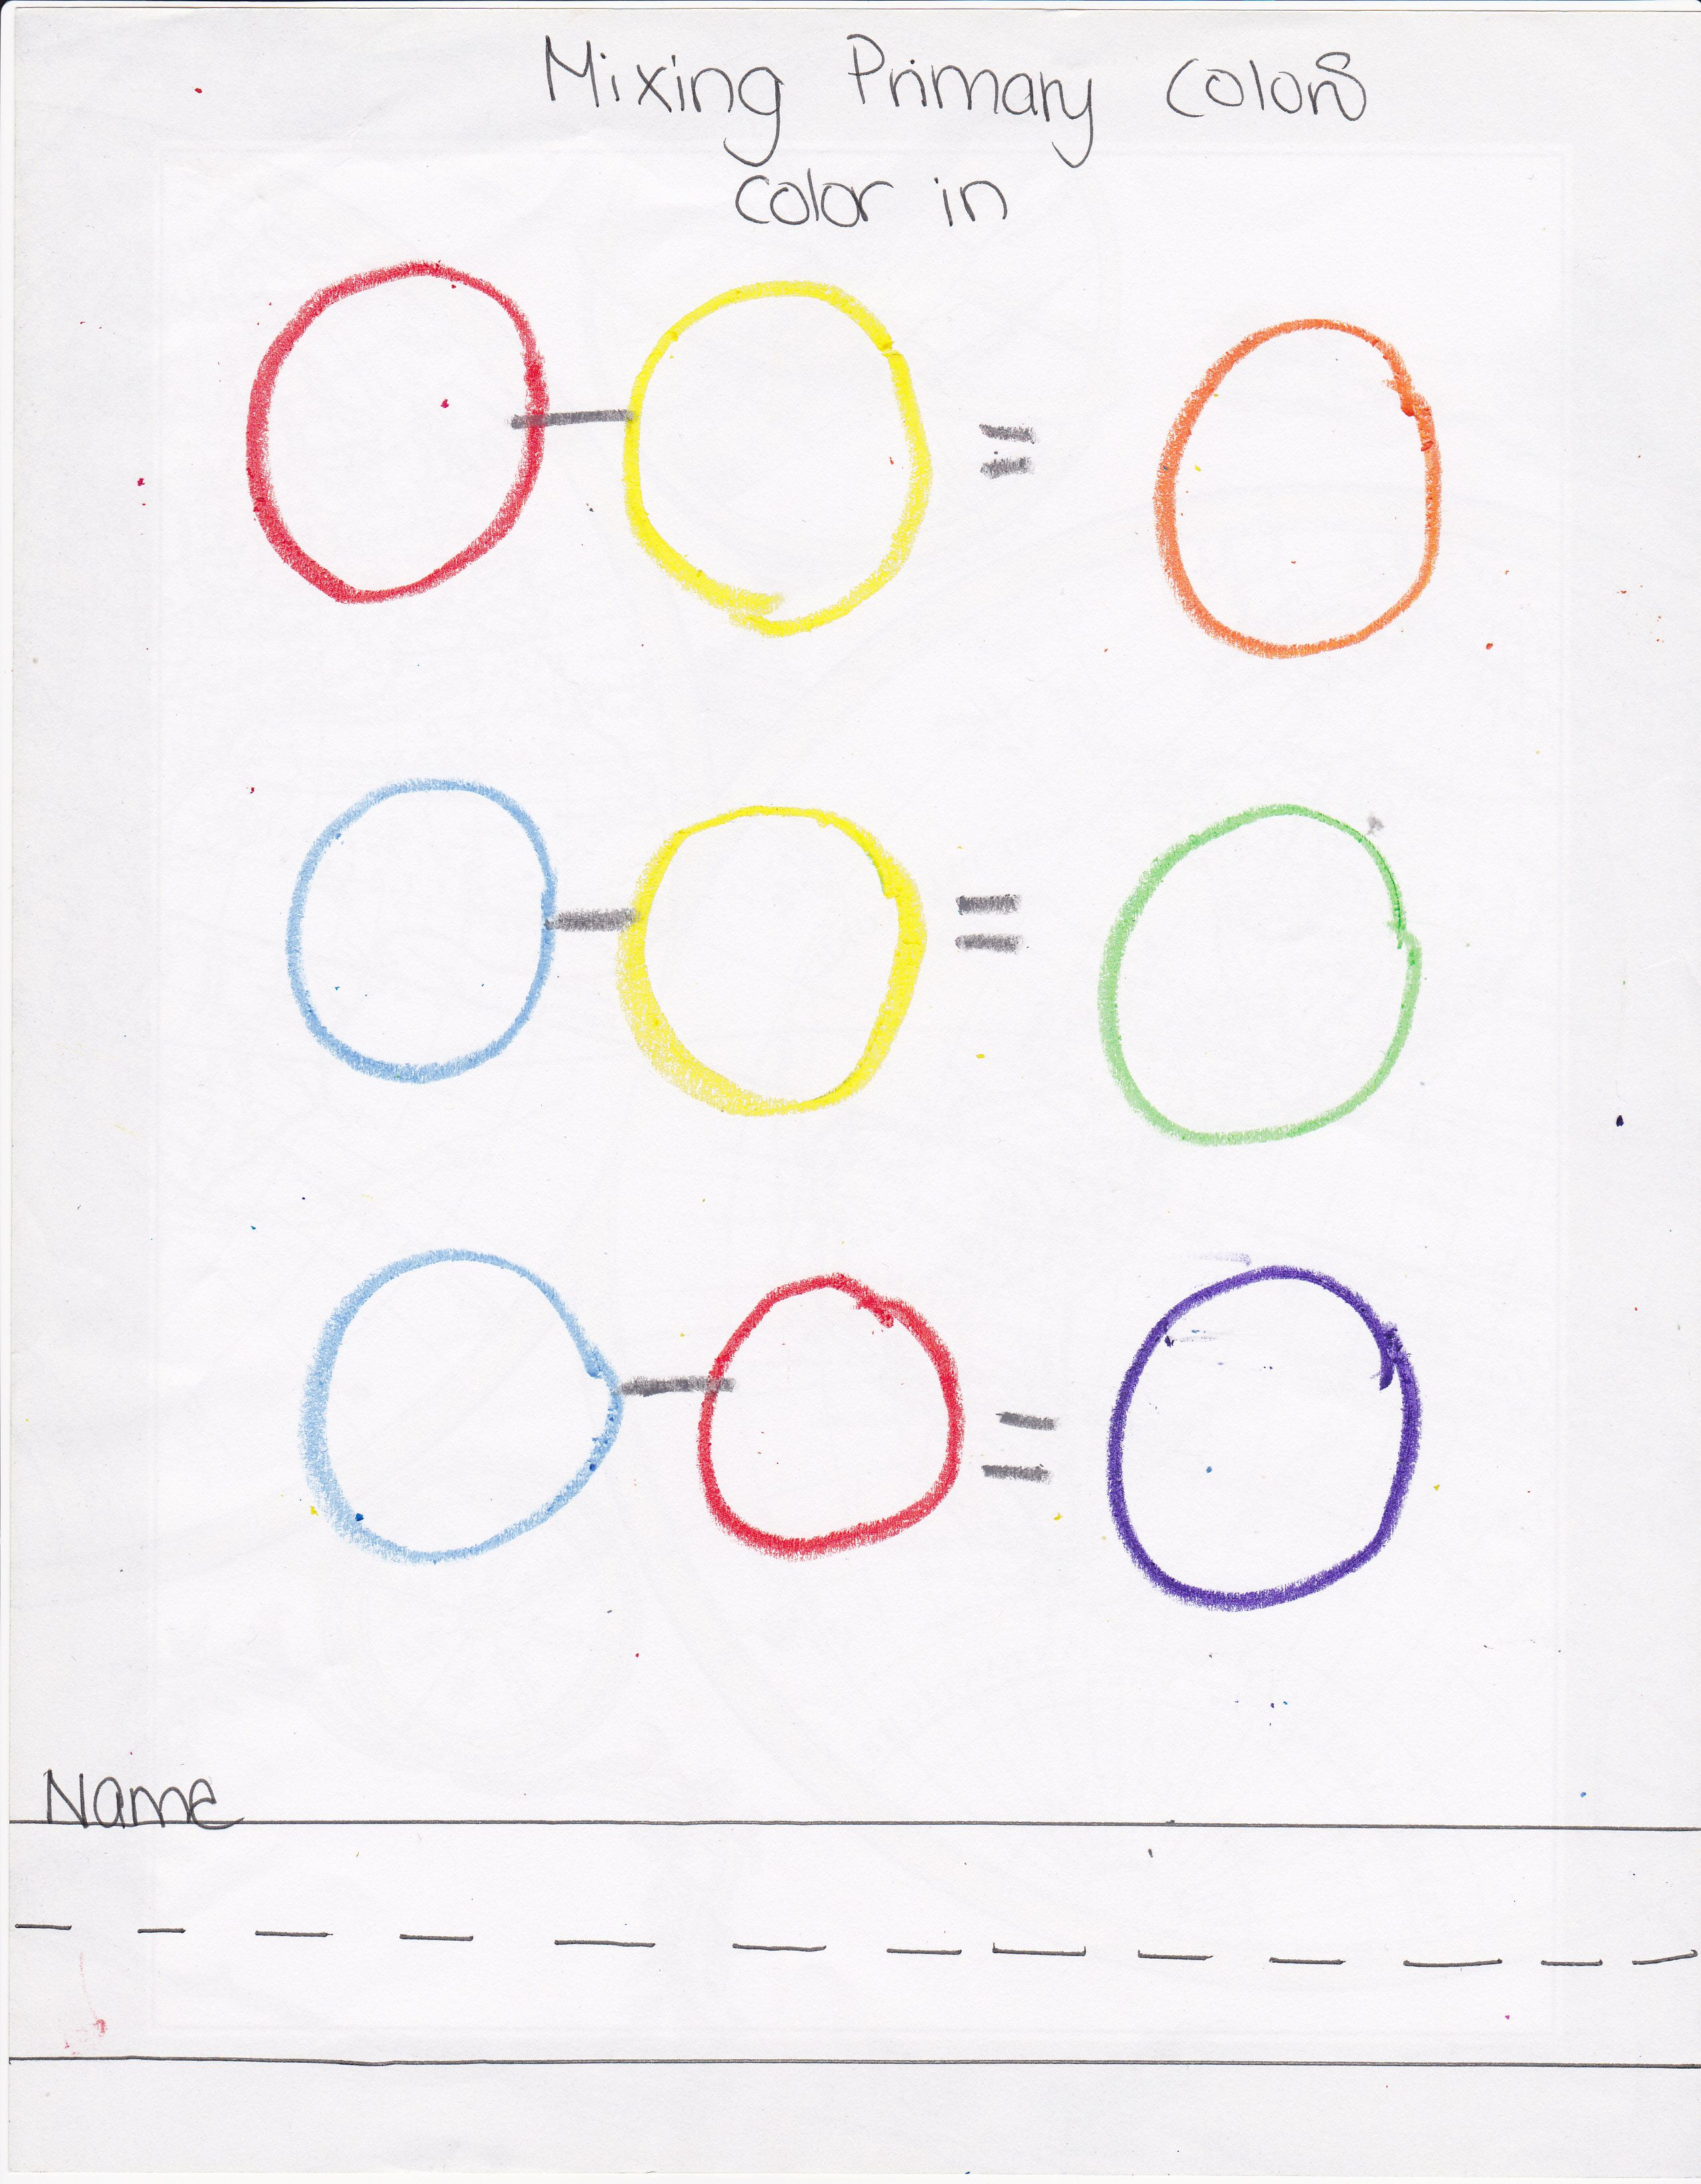 Primary Color Mixing Worksheet Very Easy To Duplicate